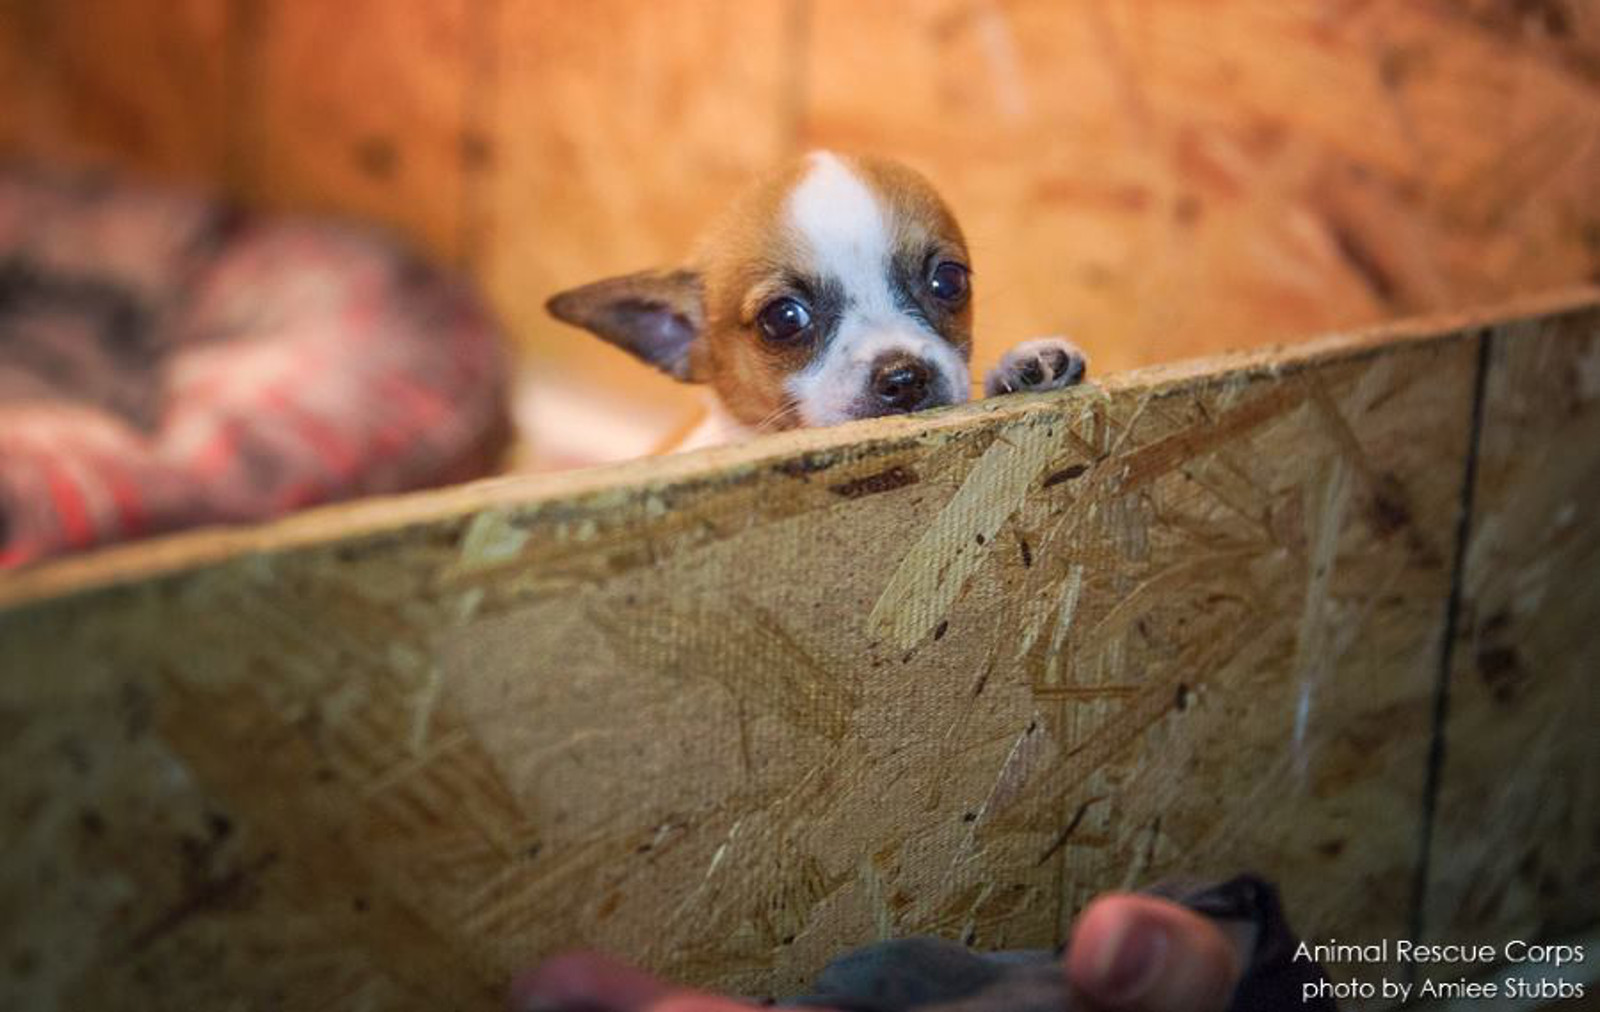 These Photos From Puppy Mills Prove Without Doubt You Should Always Adopt, NOT Shop for Pets